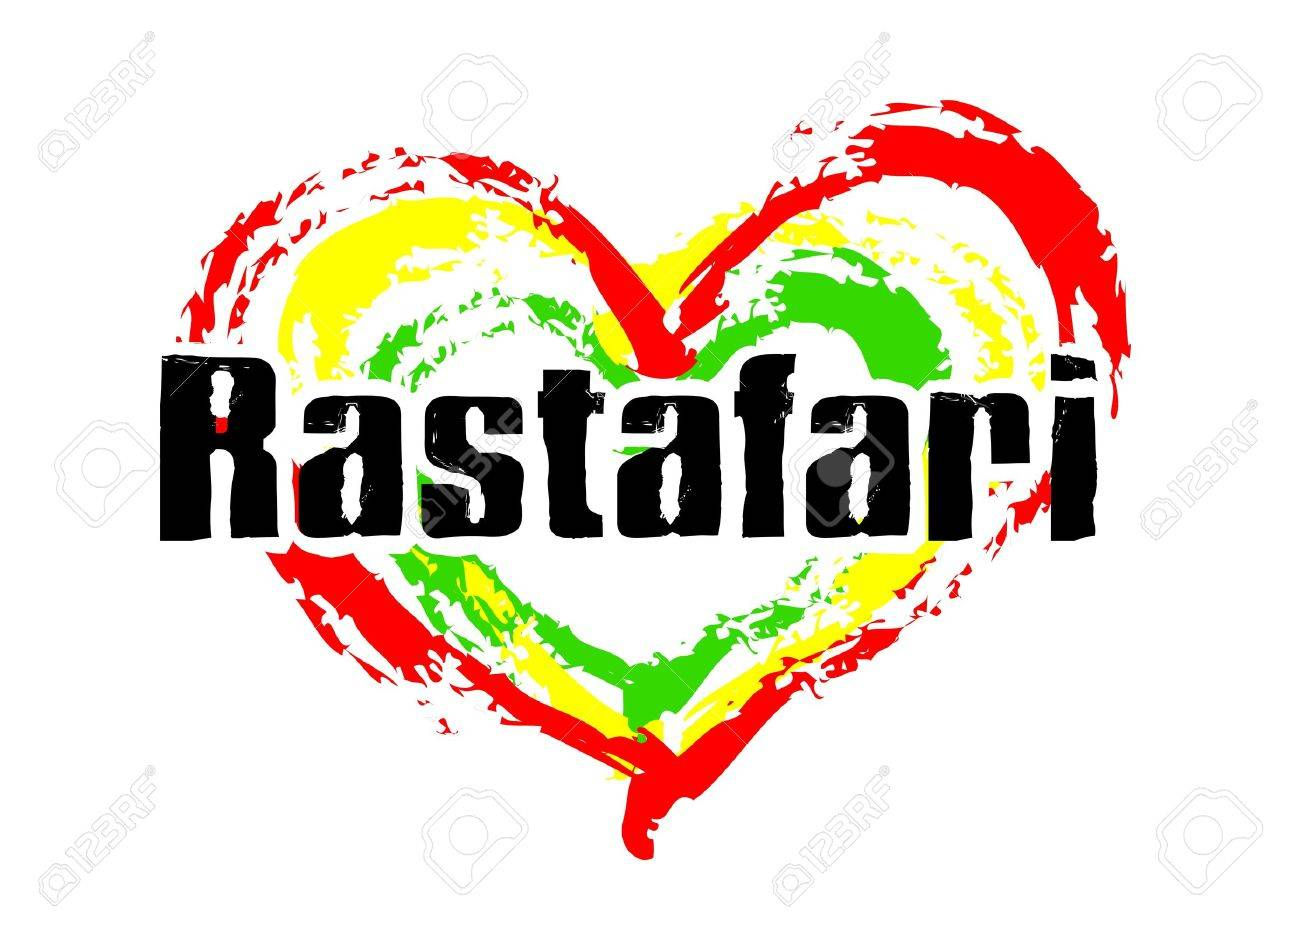 Reggae heart on white background Stock Photo - 8602437